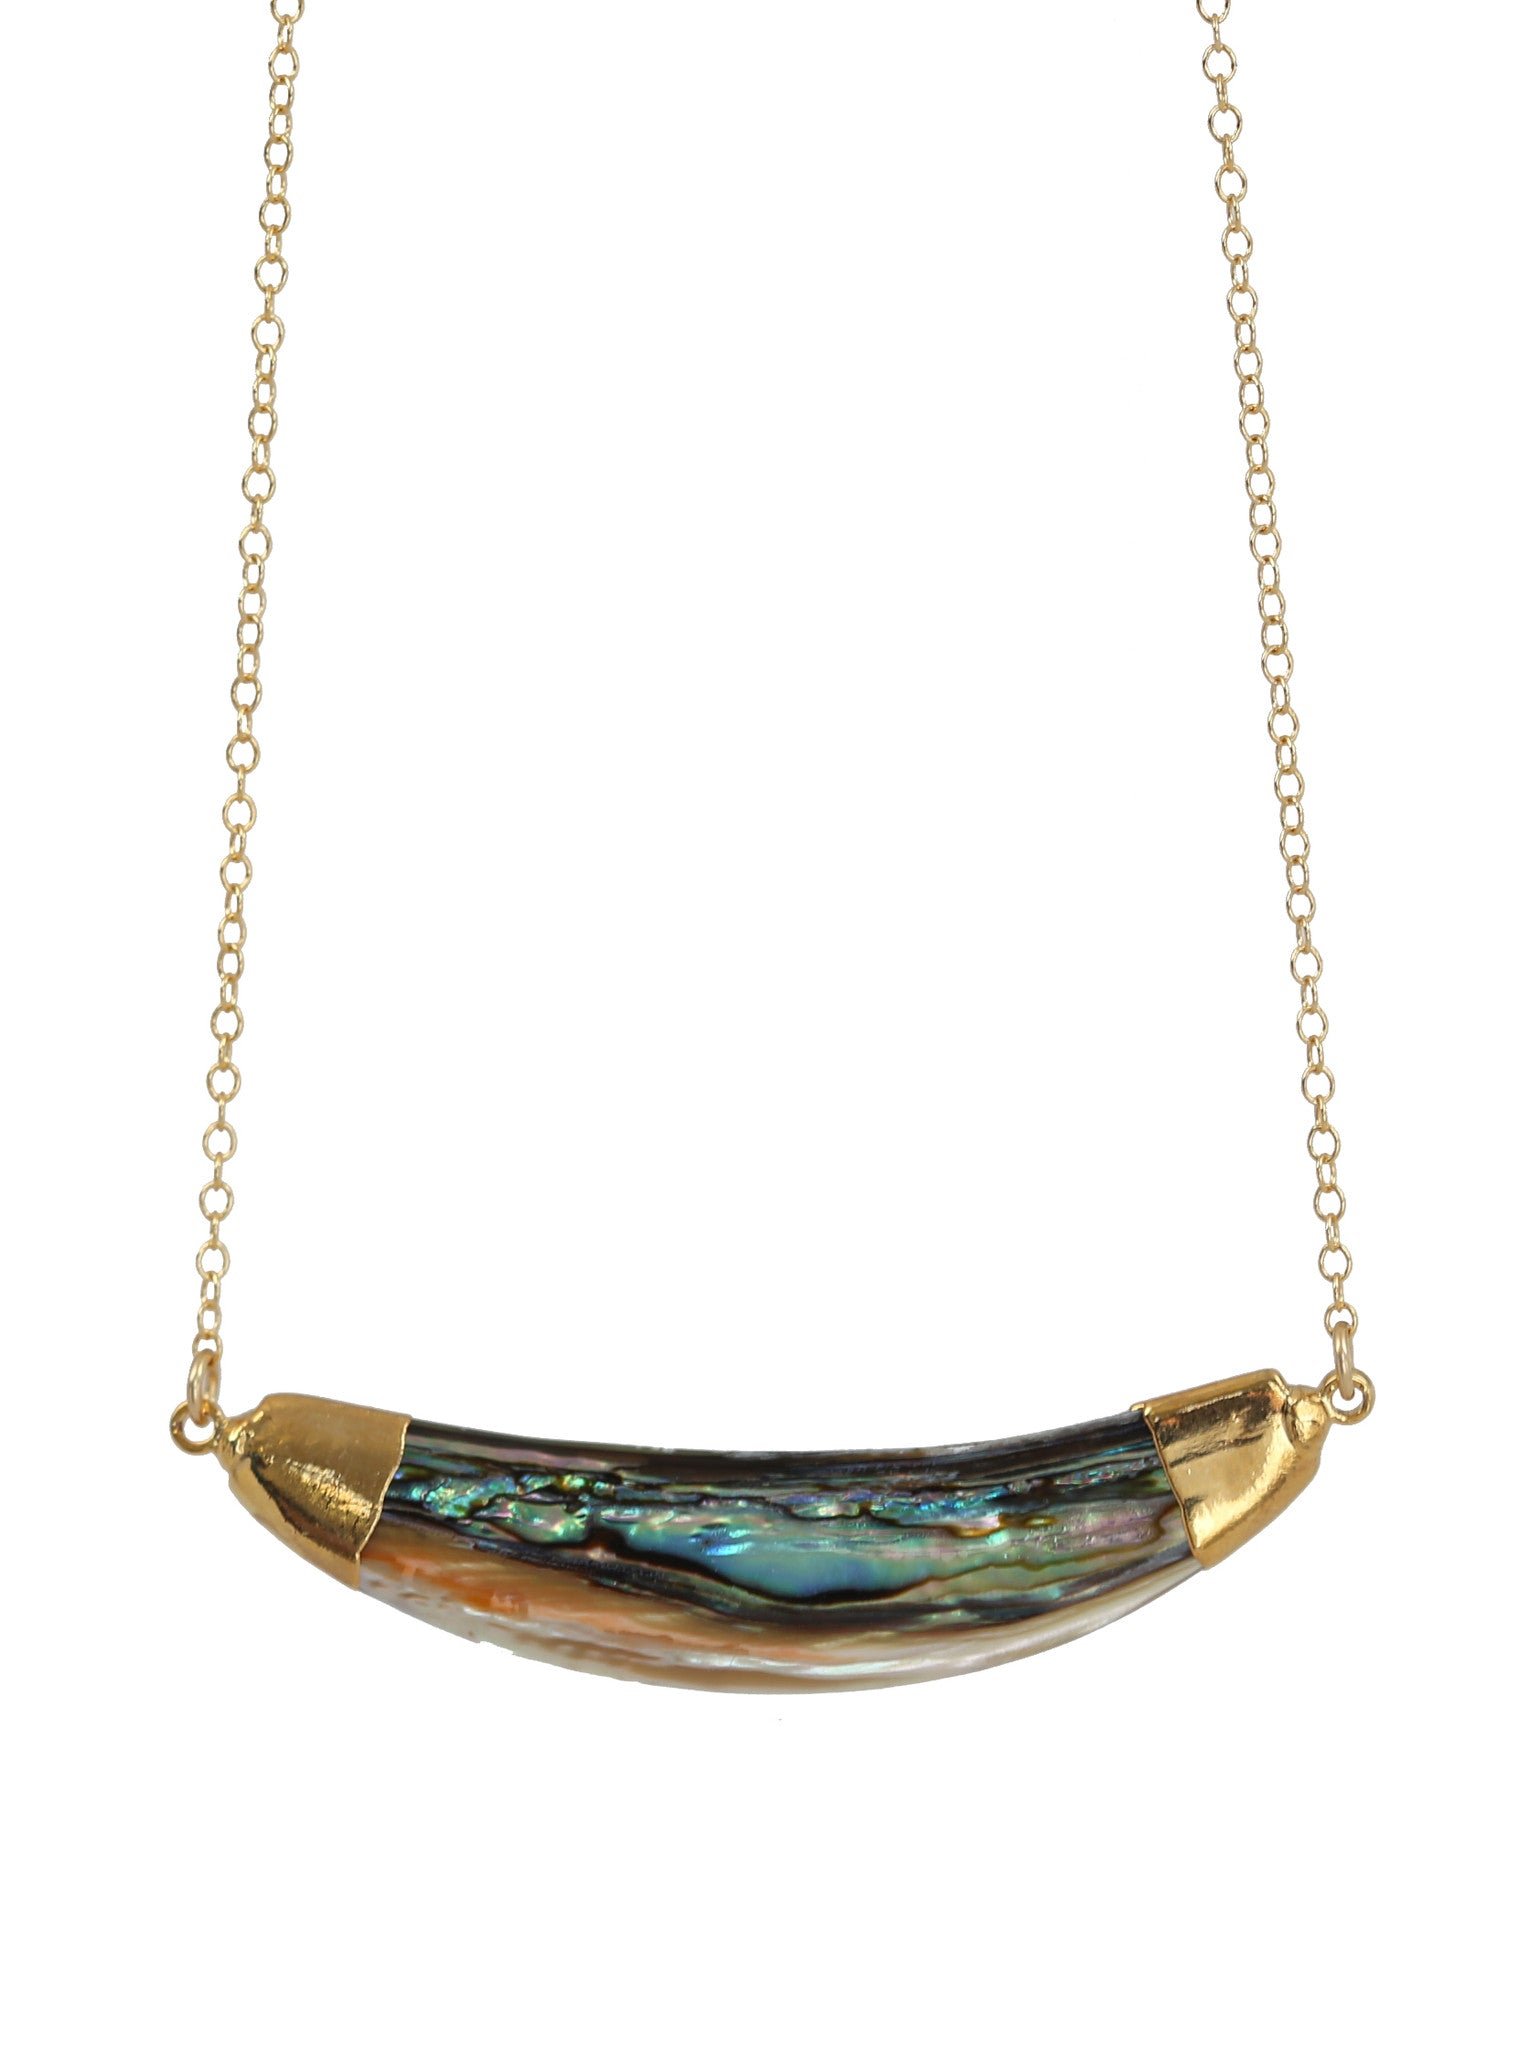 ABALONE curve necklace